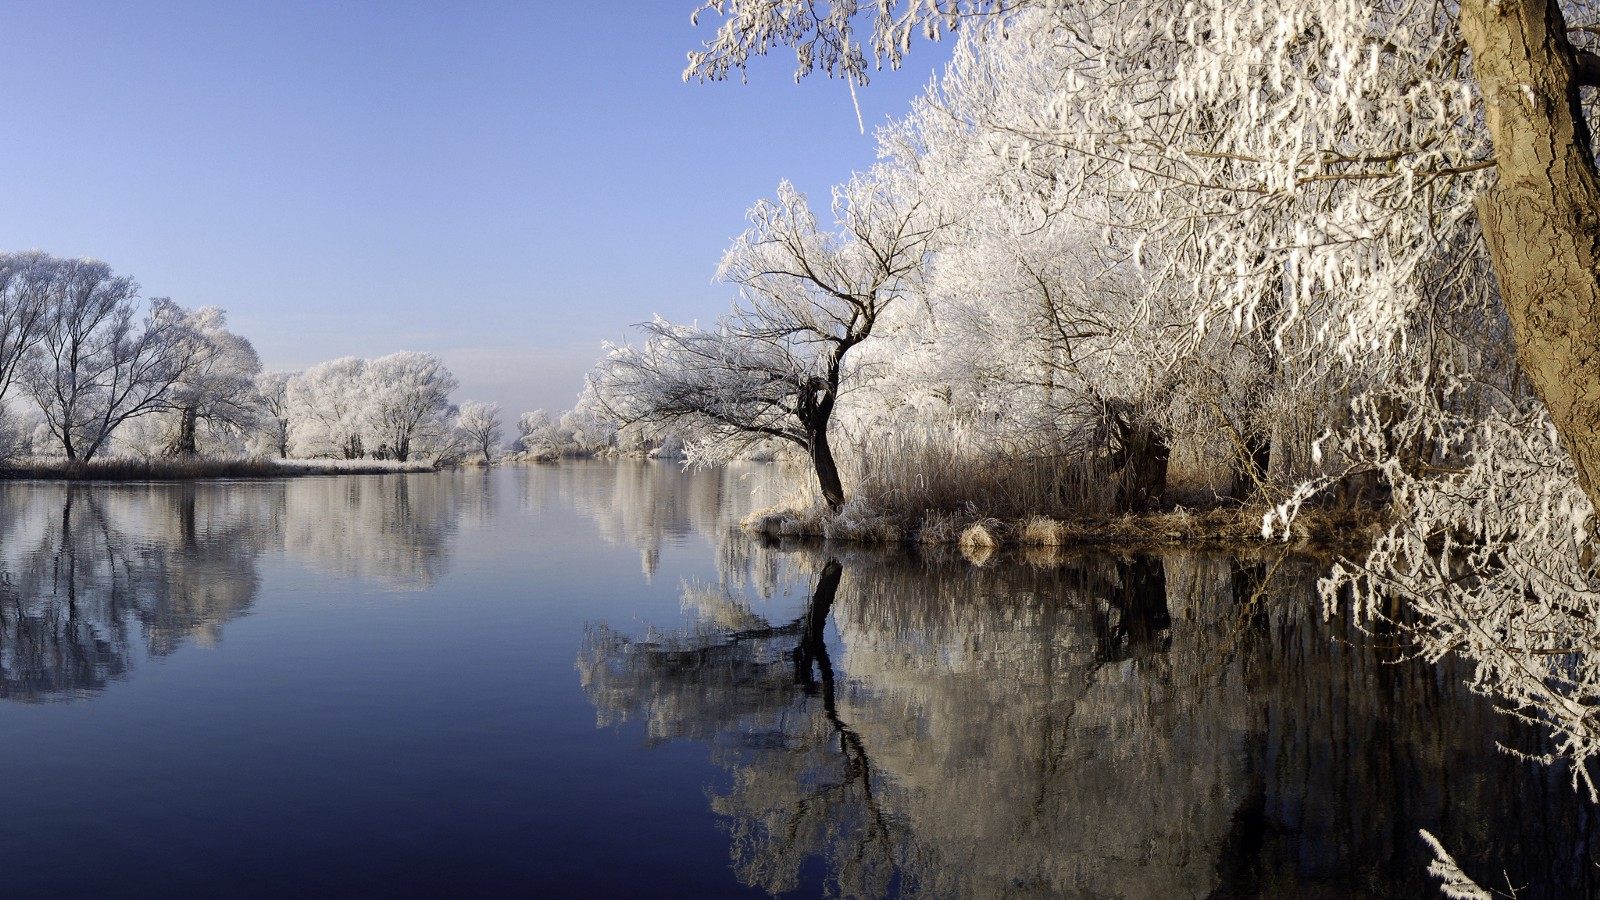 Havel River near Brandenburg, Germany